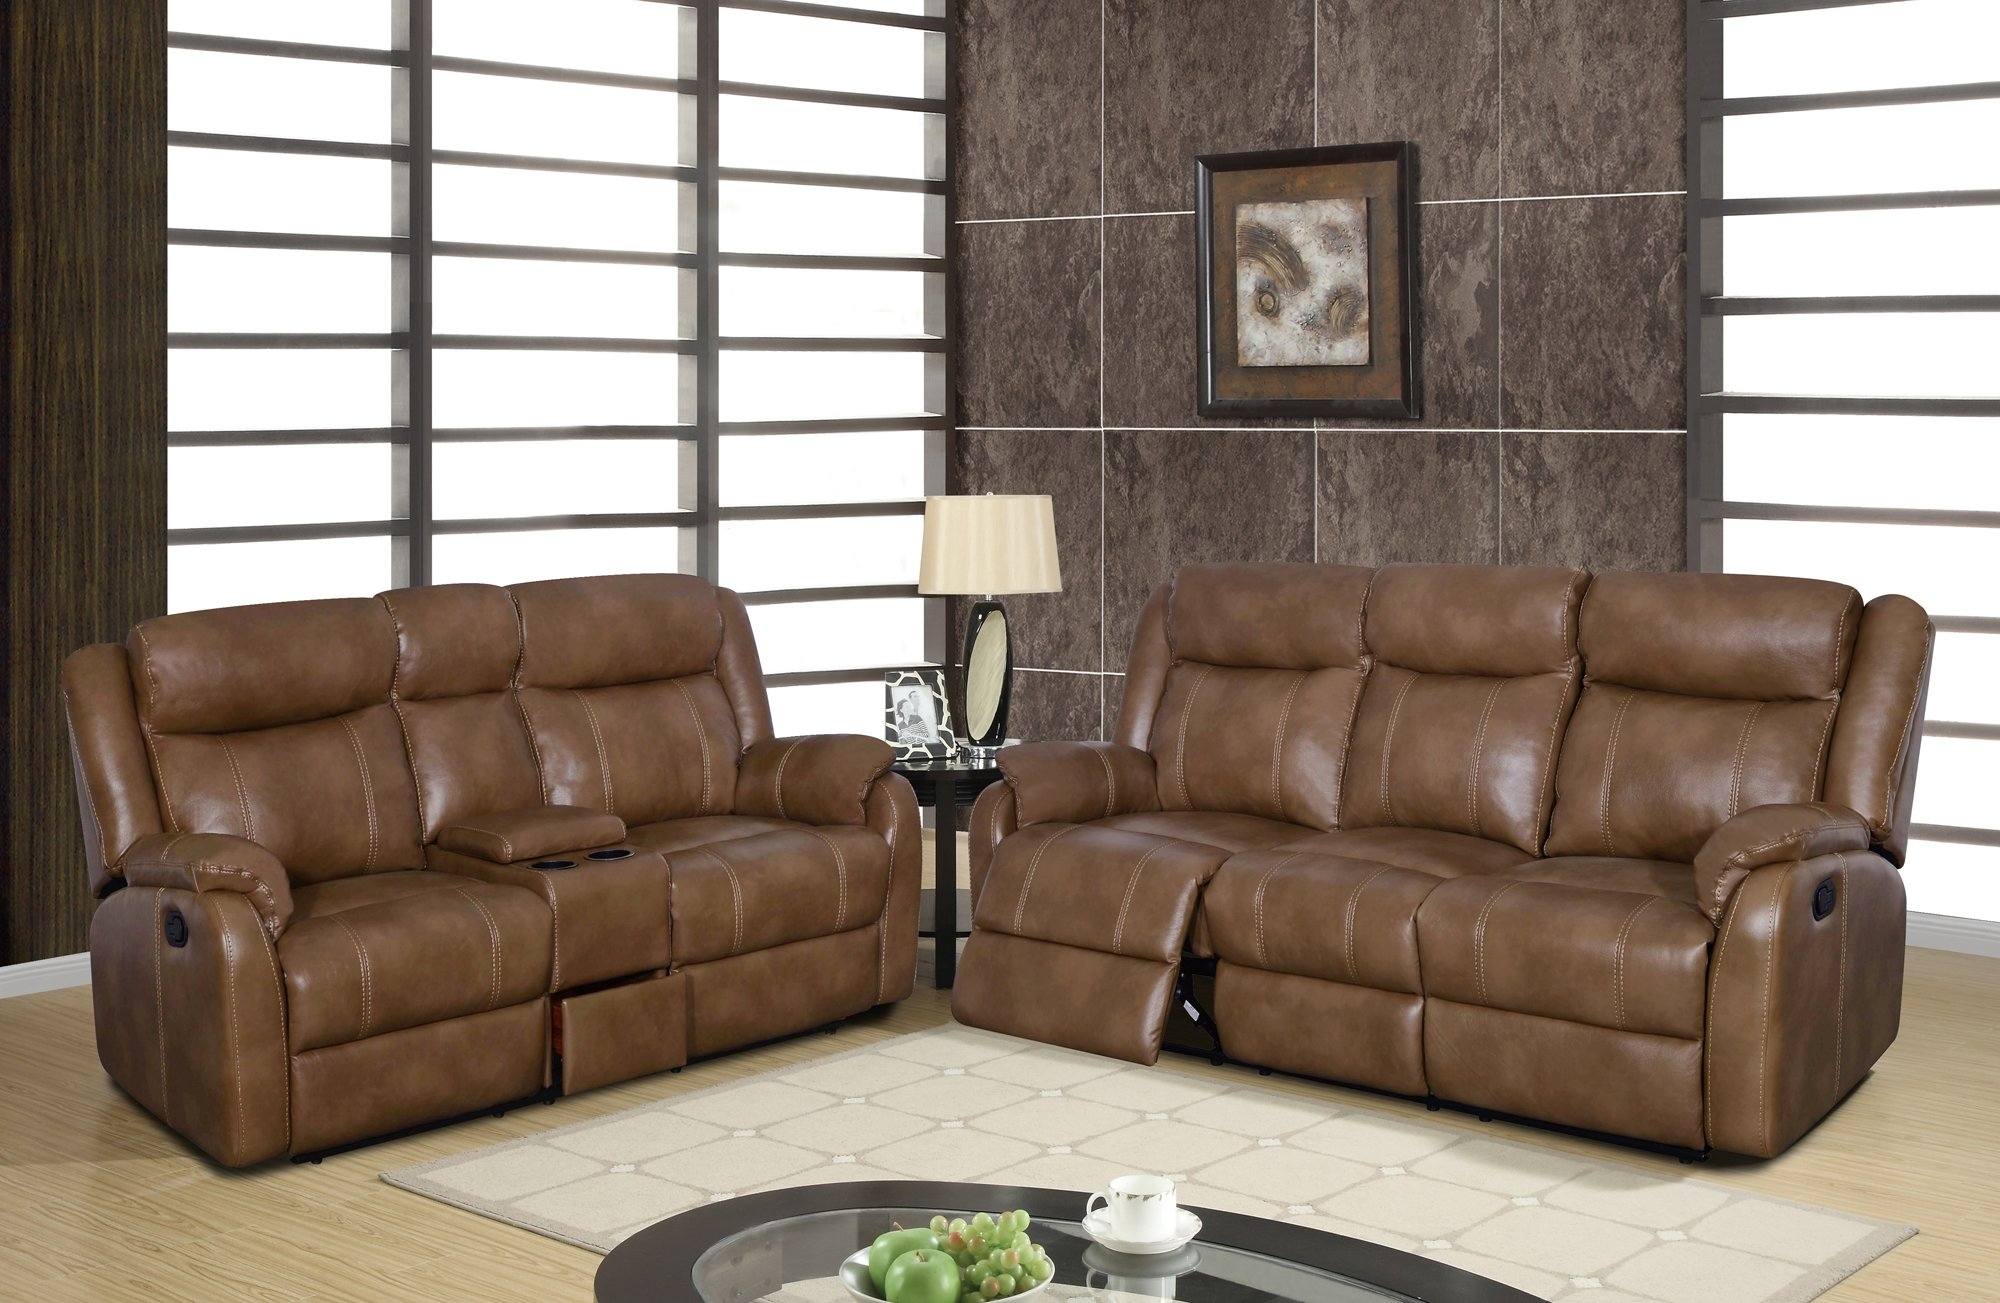 Walnut Living Room Furniture U7303c Walnut Leather Gel Console Loveseat W Drawer By Global